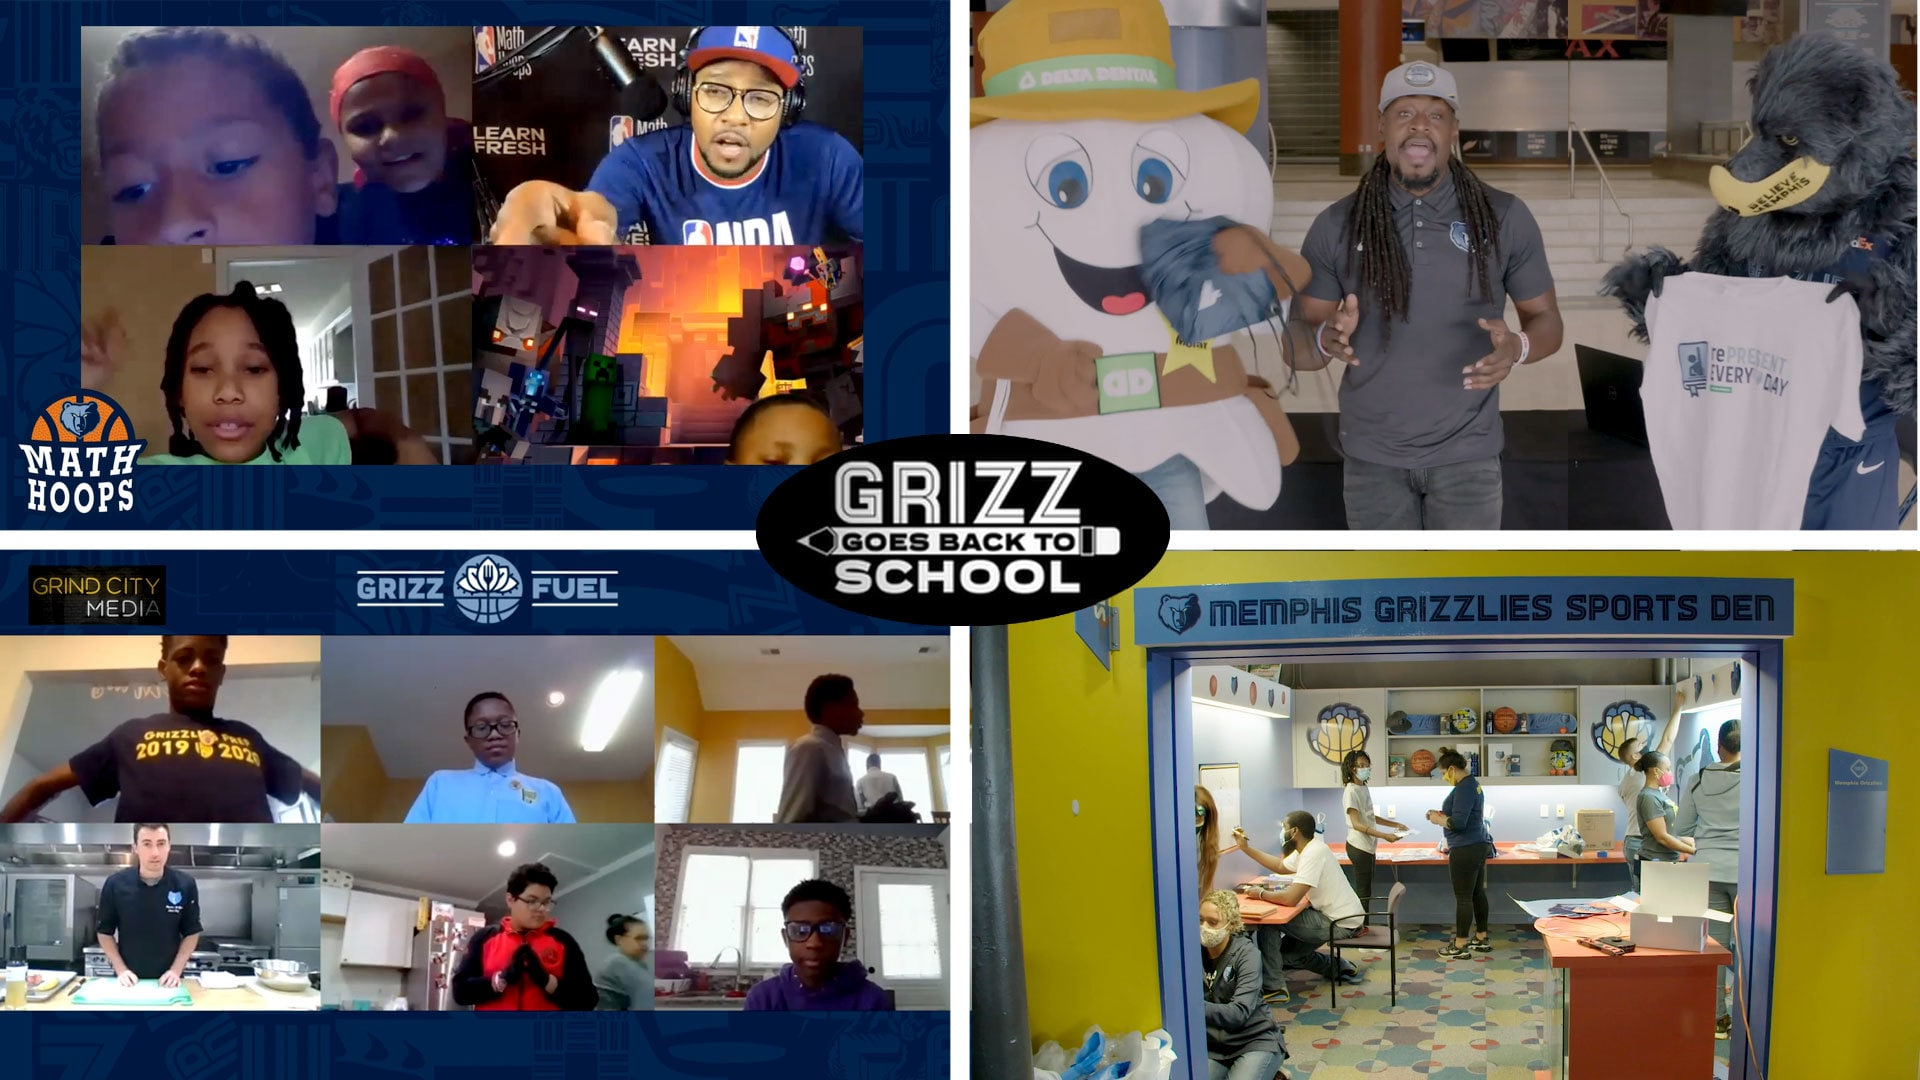 Grizz Goes Back to School Campaign Recap